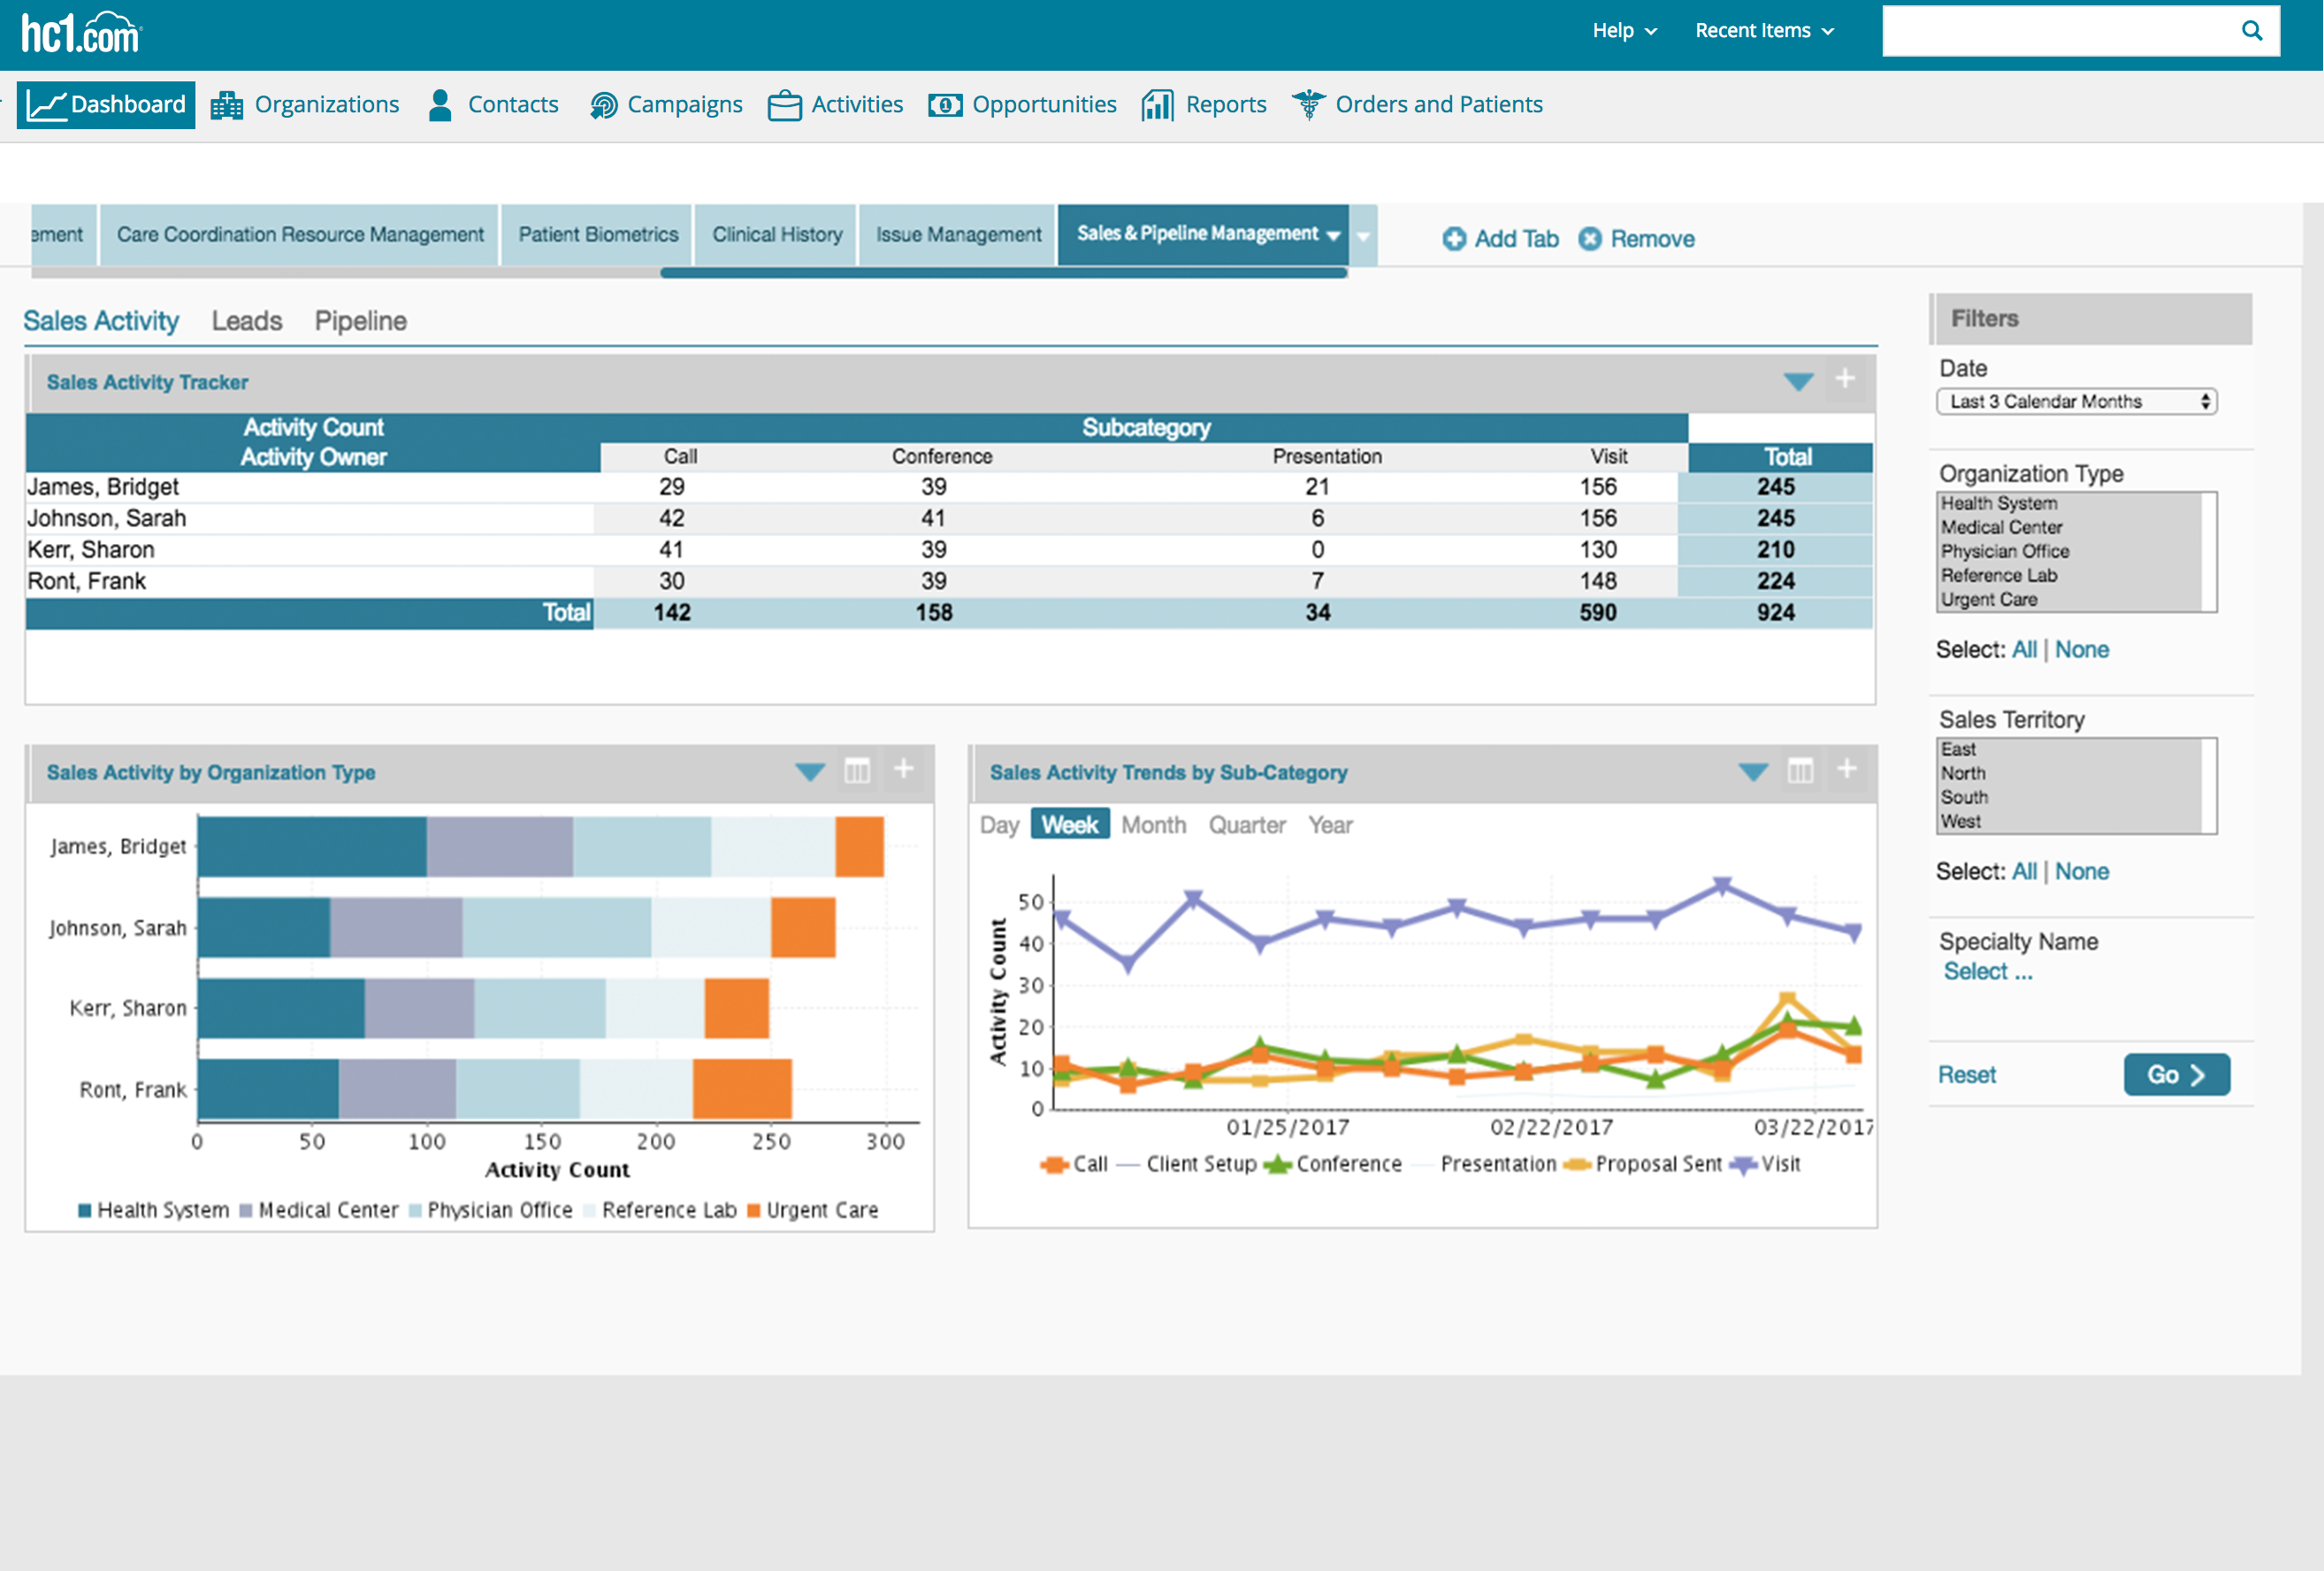 Healthcare CRM Sales and Pipeline Management Dashboard